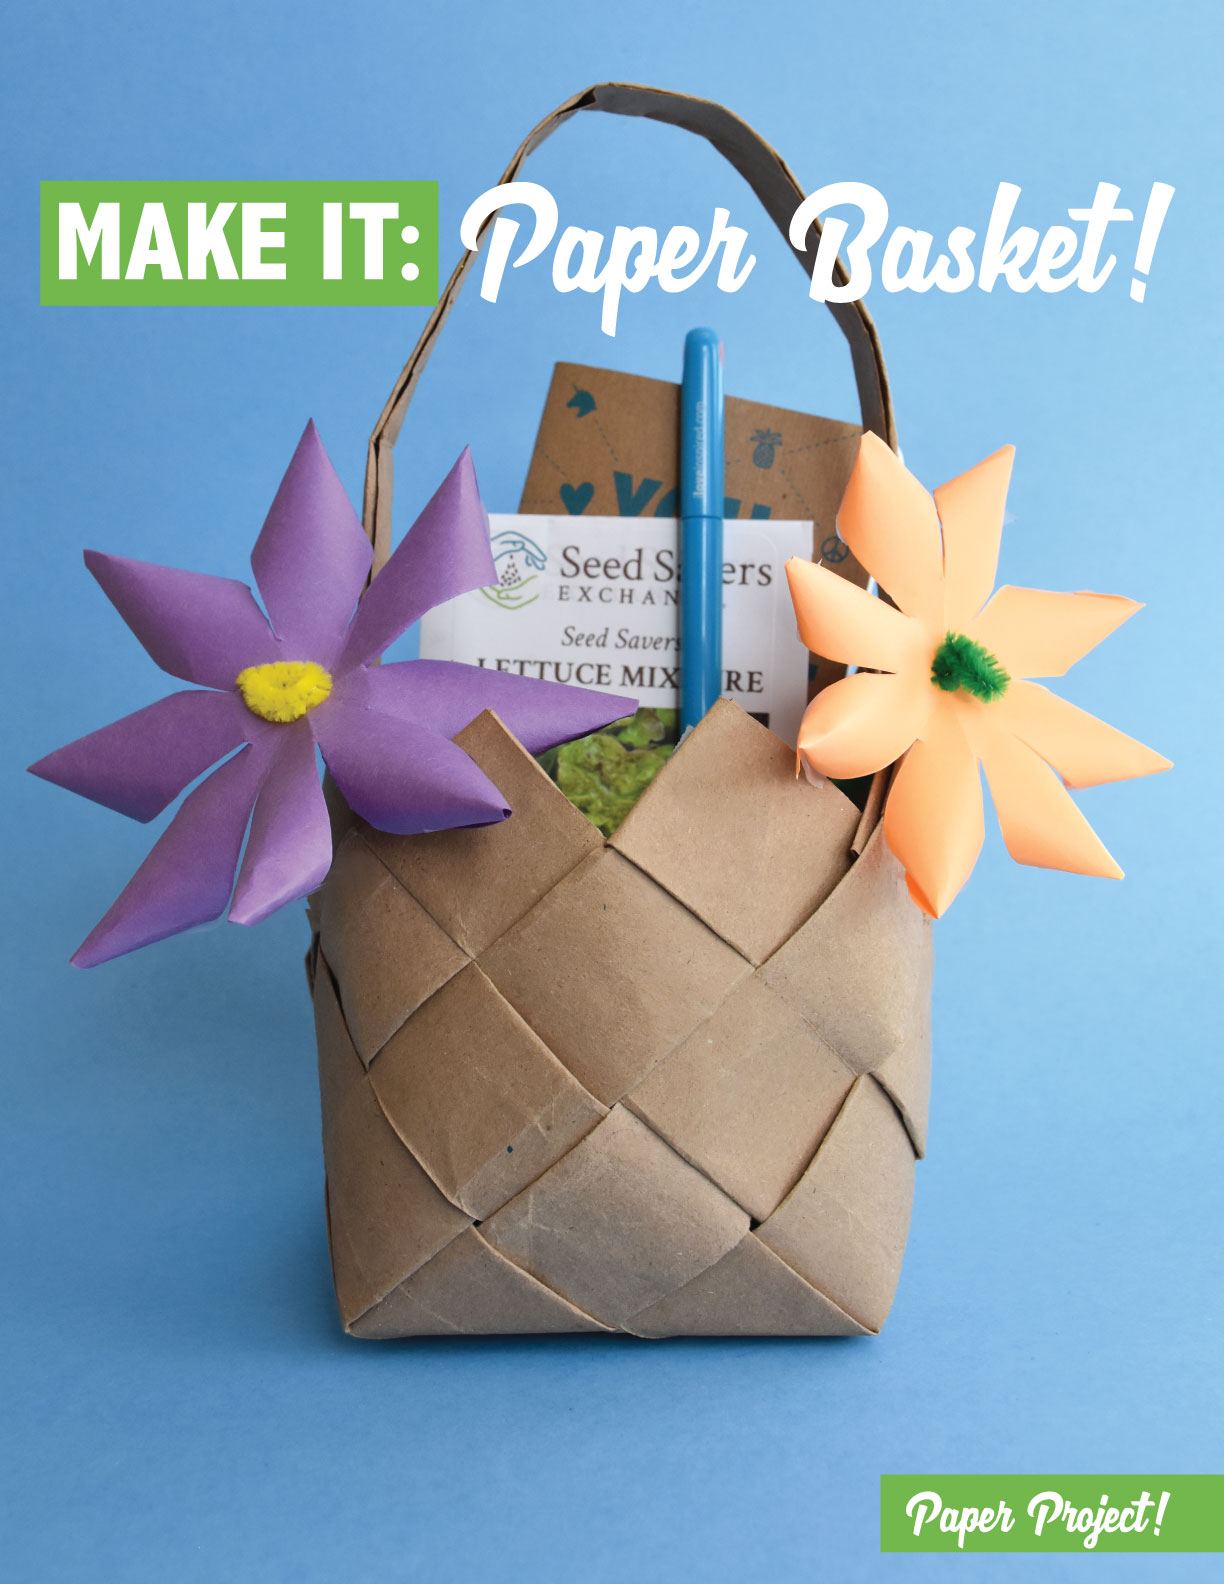 Learn how to make a paper basket out of a grocery sack!